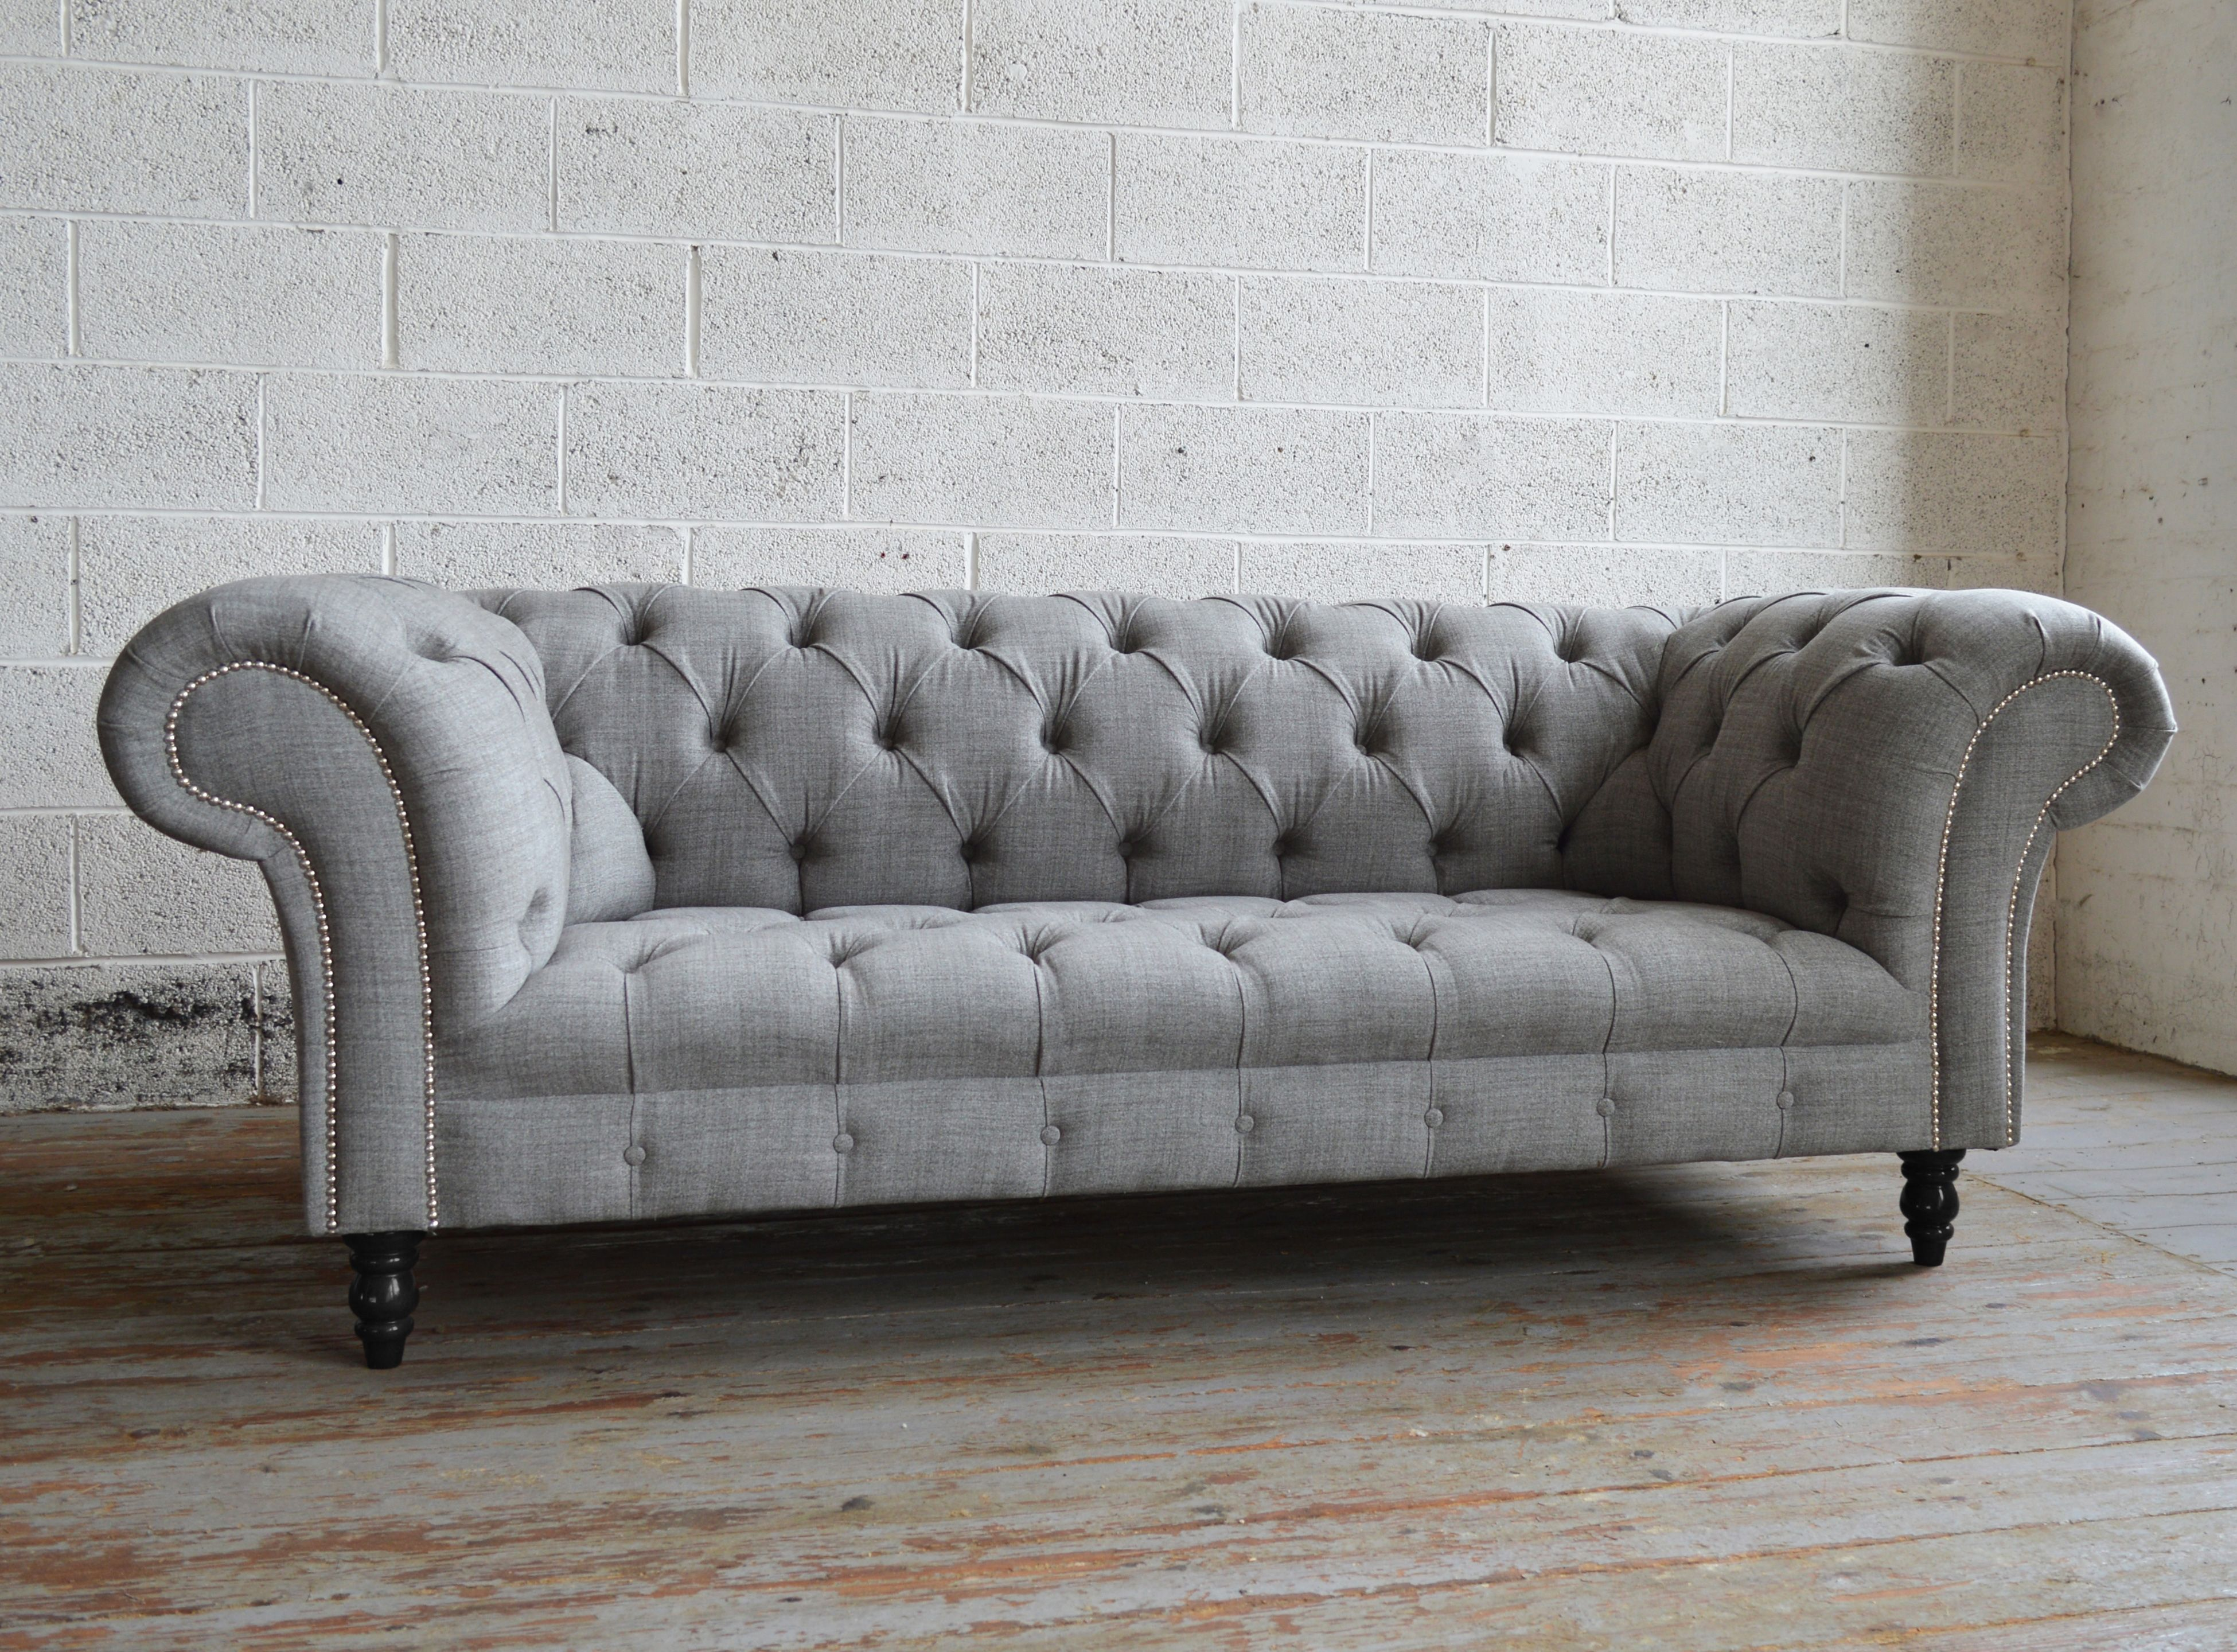 Romford Wool Chesterfield Sofa Chesterfield sofa Chesterfield and